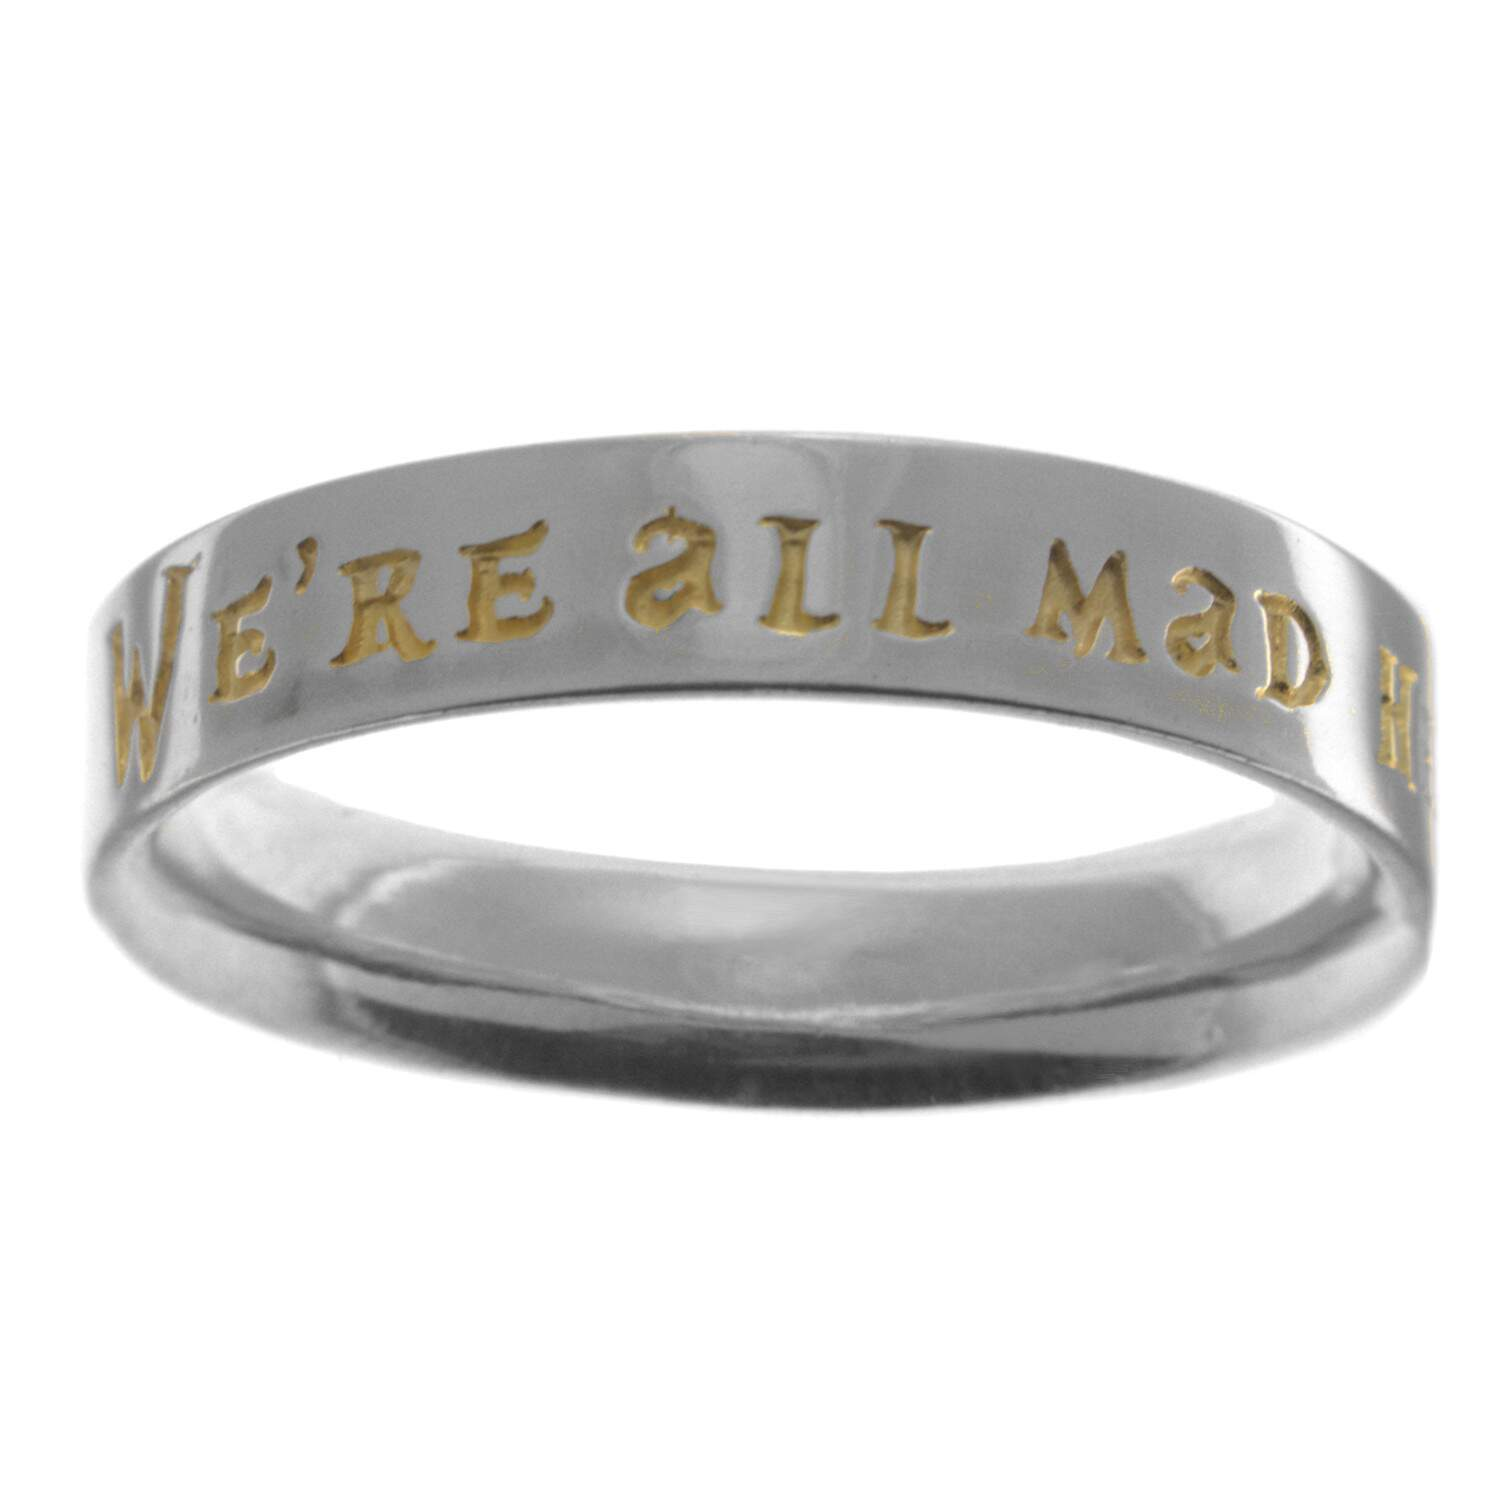 Aliança / Anel em Prata com Aplique de ouro 18k - We are all made here - 1508gold